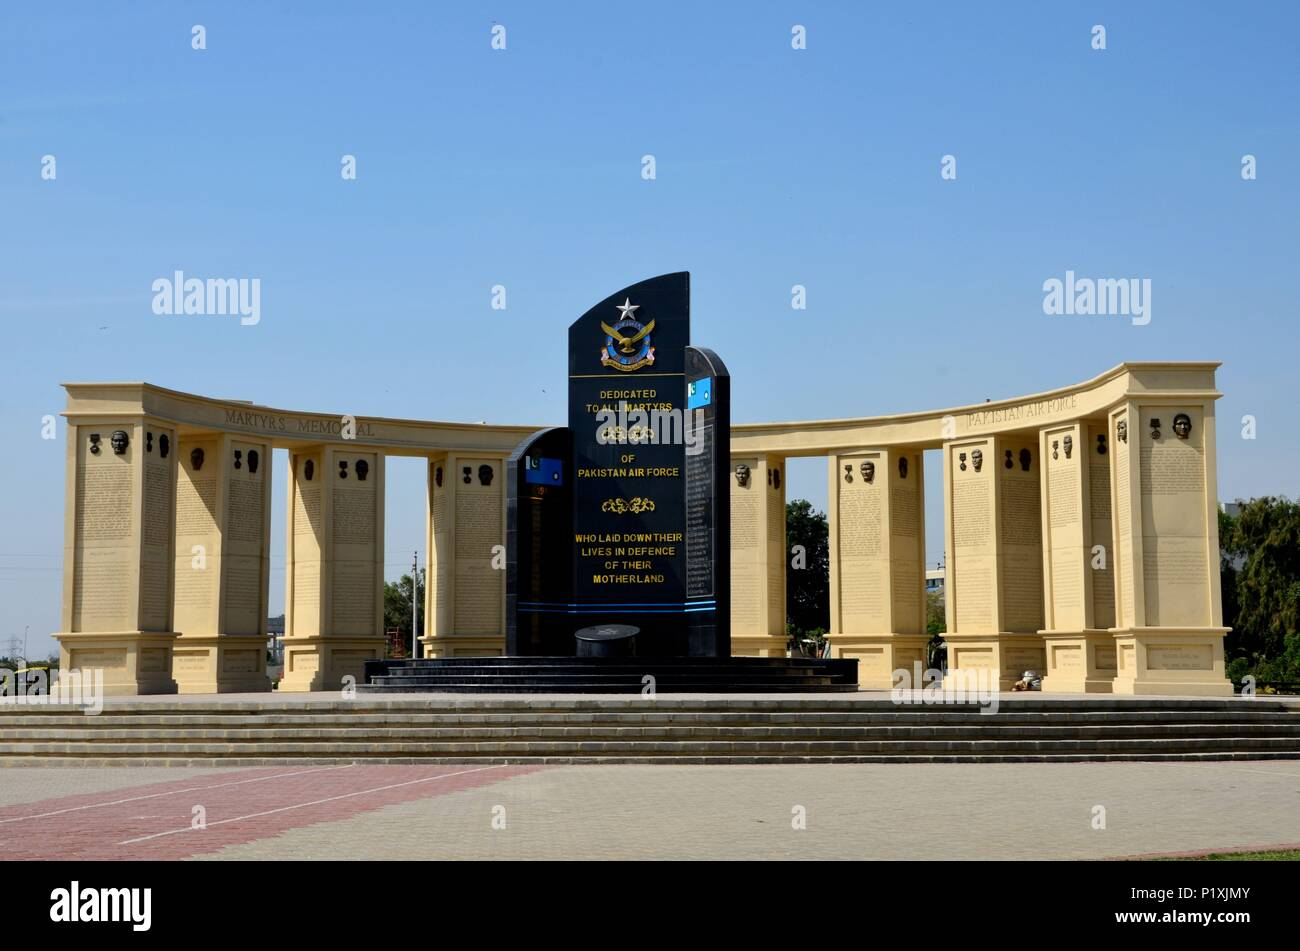 Pakistan Air Force Martyrs Monument with names and symbol honoring dead Pakistani airmen at PAF Museum Karachi Pakistan - Stock Image